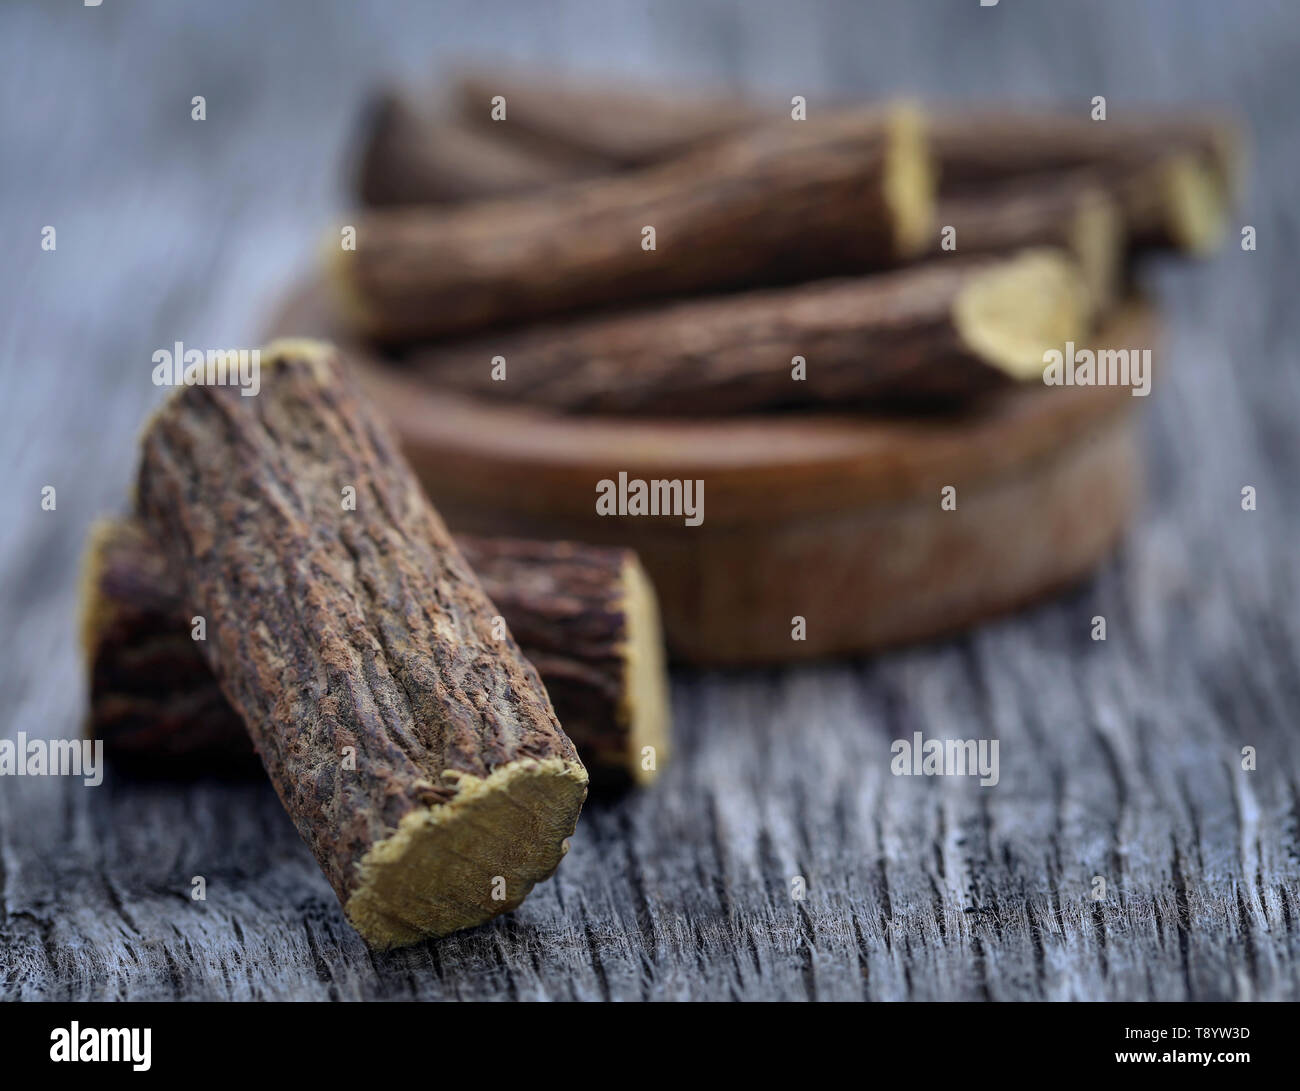 Liquorice stick in wooden bowl on textured surface - Stock Image